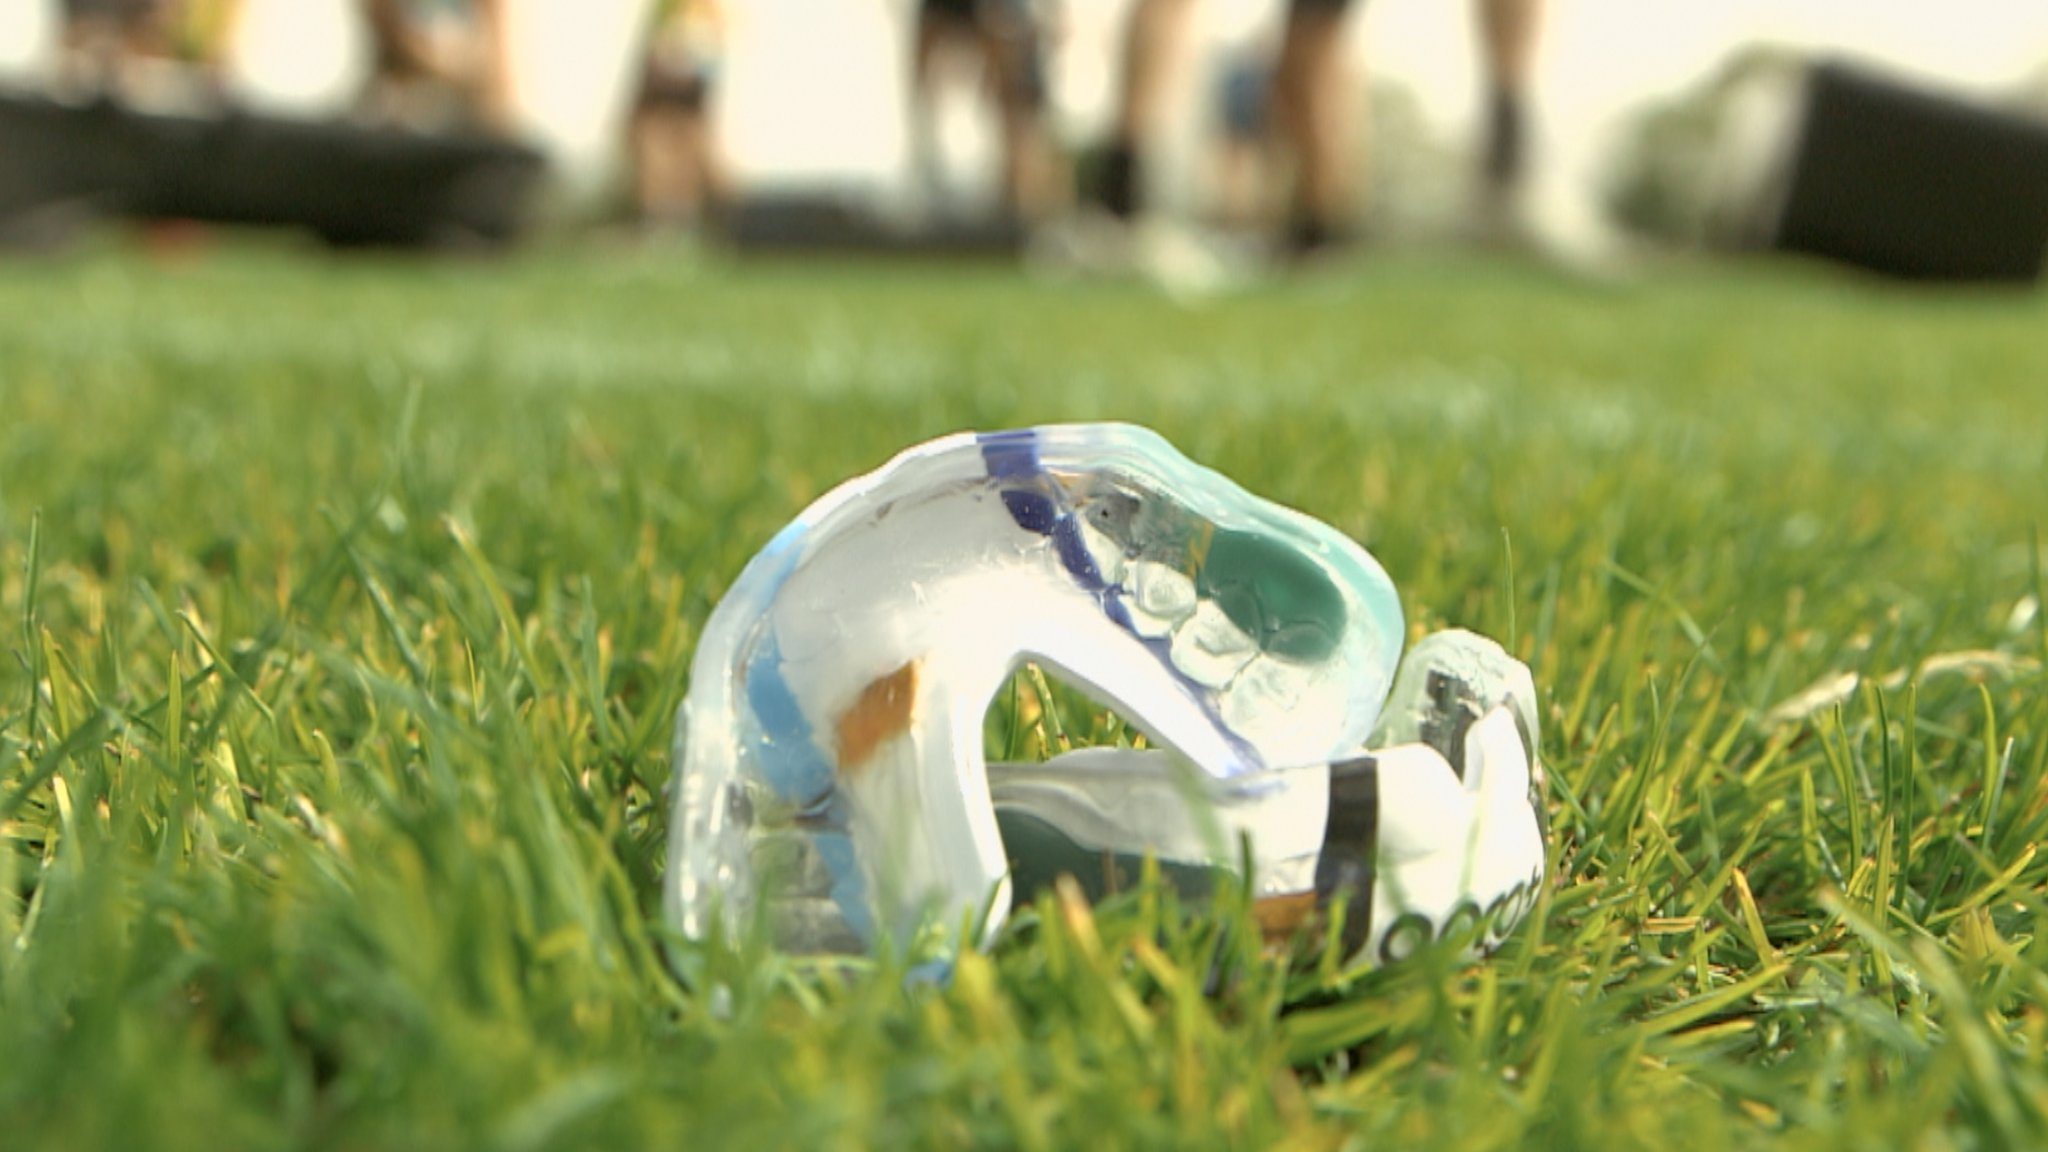 Judgement Day: Players use new gum shield intended to monitor concussion